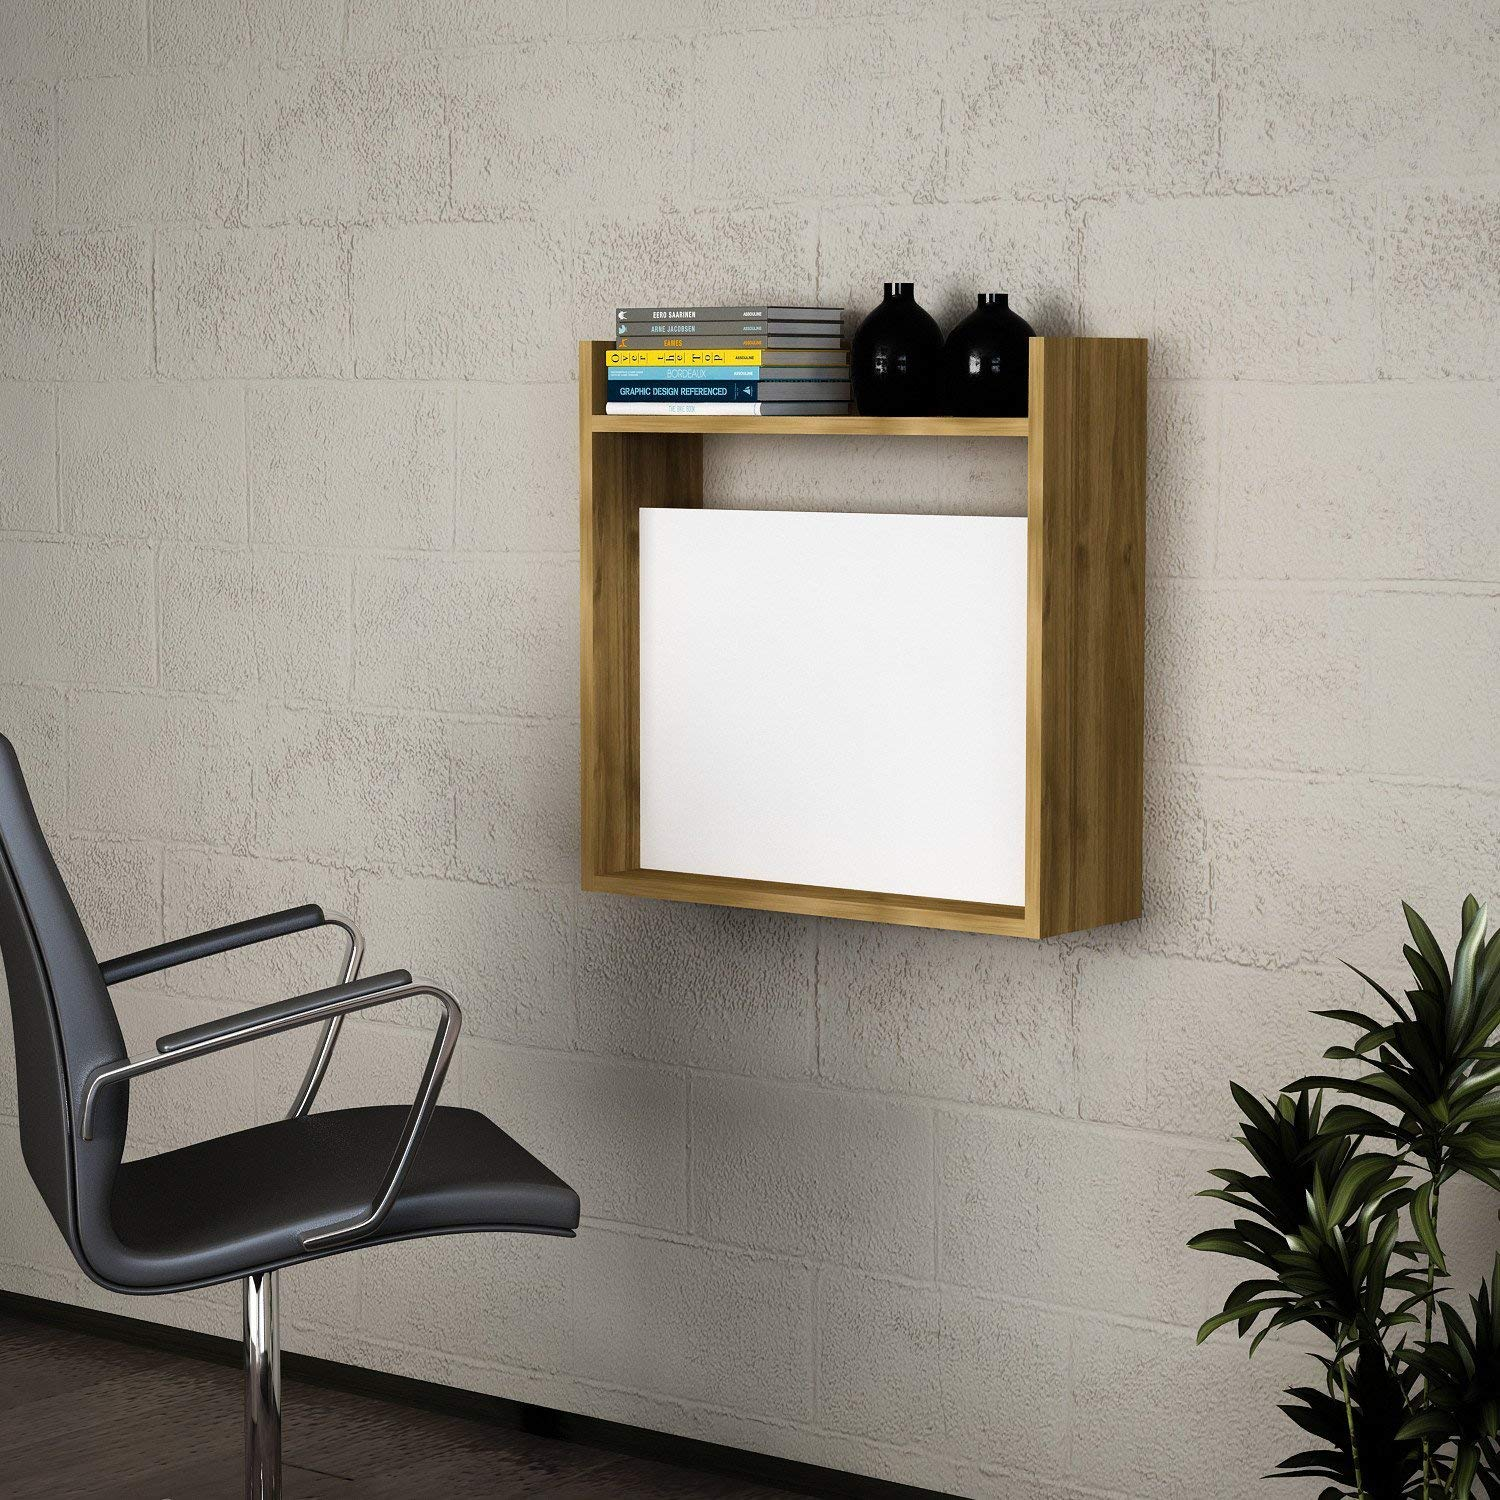 Writing Computer Desk Modern & Simple White-Brown Wall Shelf Wooden Book Resistant Study Desk Industrial Style Study & Laptop Table Home, Office, Living Room, Study Room Laptop - White, Walnut